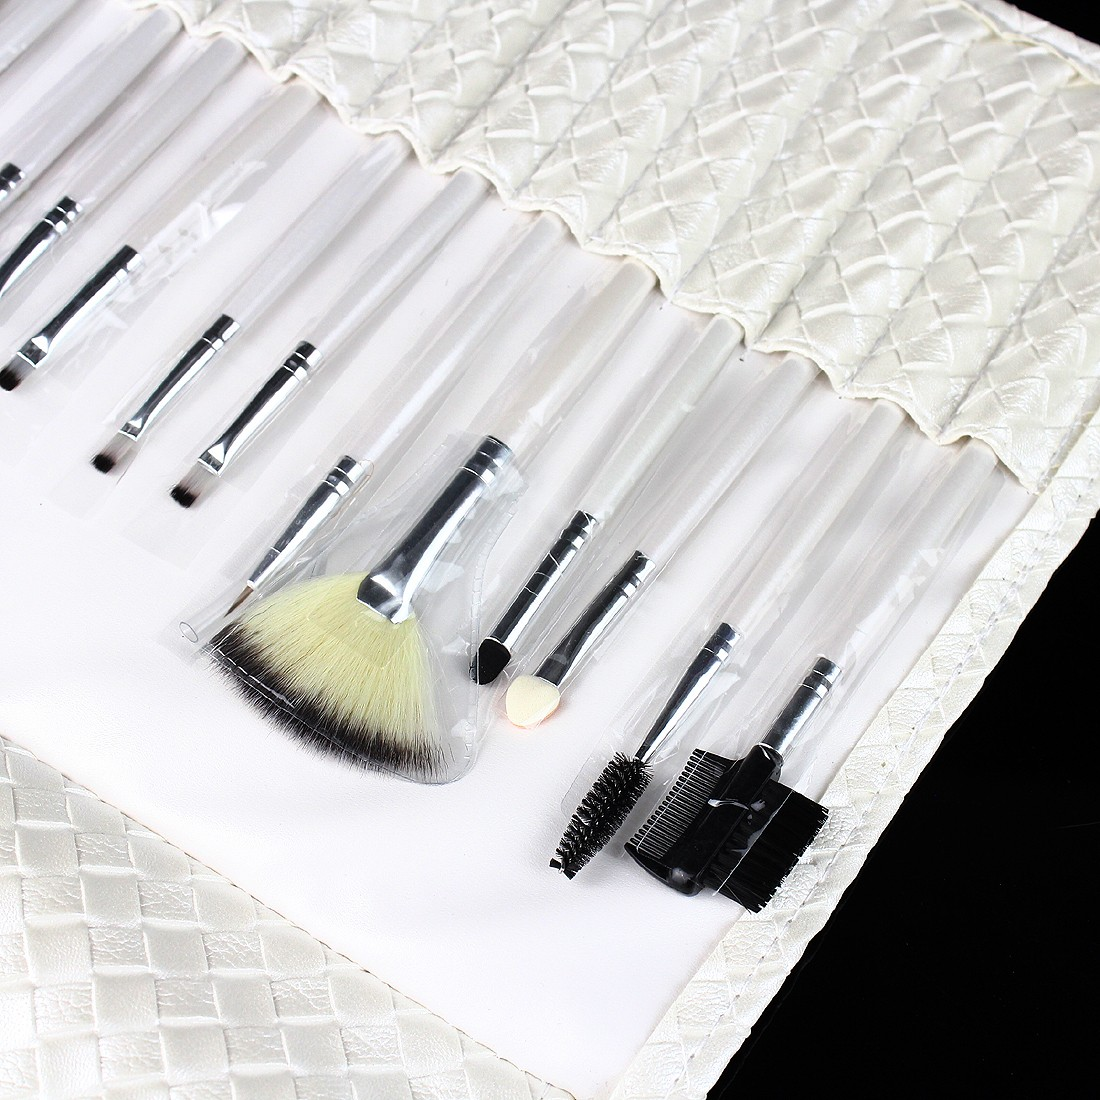 2016 Makeup Brushes Cosmetic Tool Kit Eyeshadow Powder Brush Set+ Case 36 Pcs/set